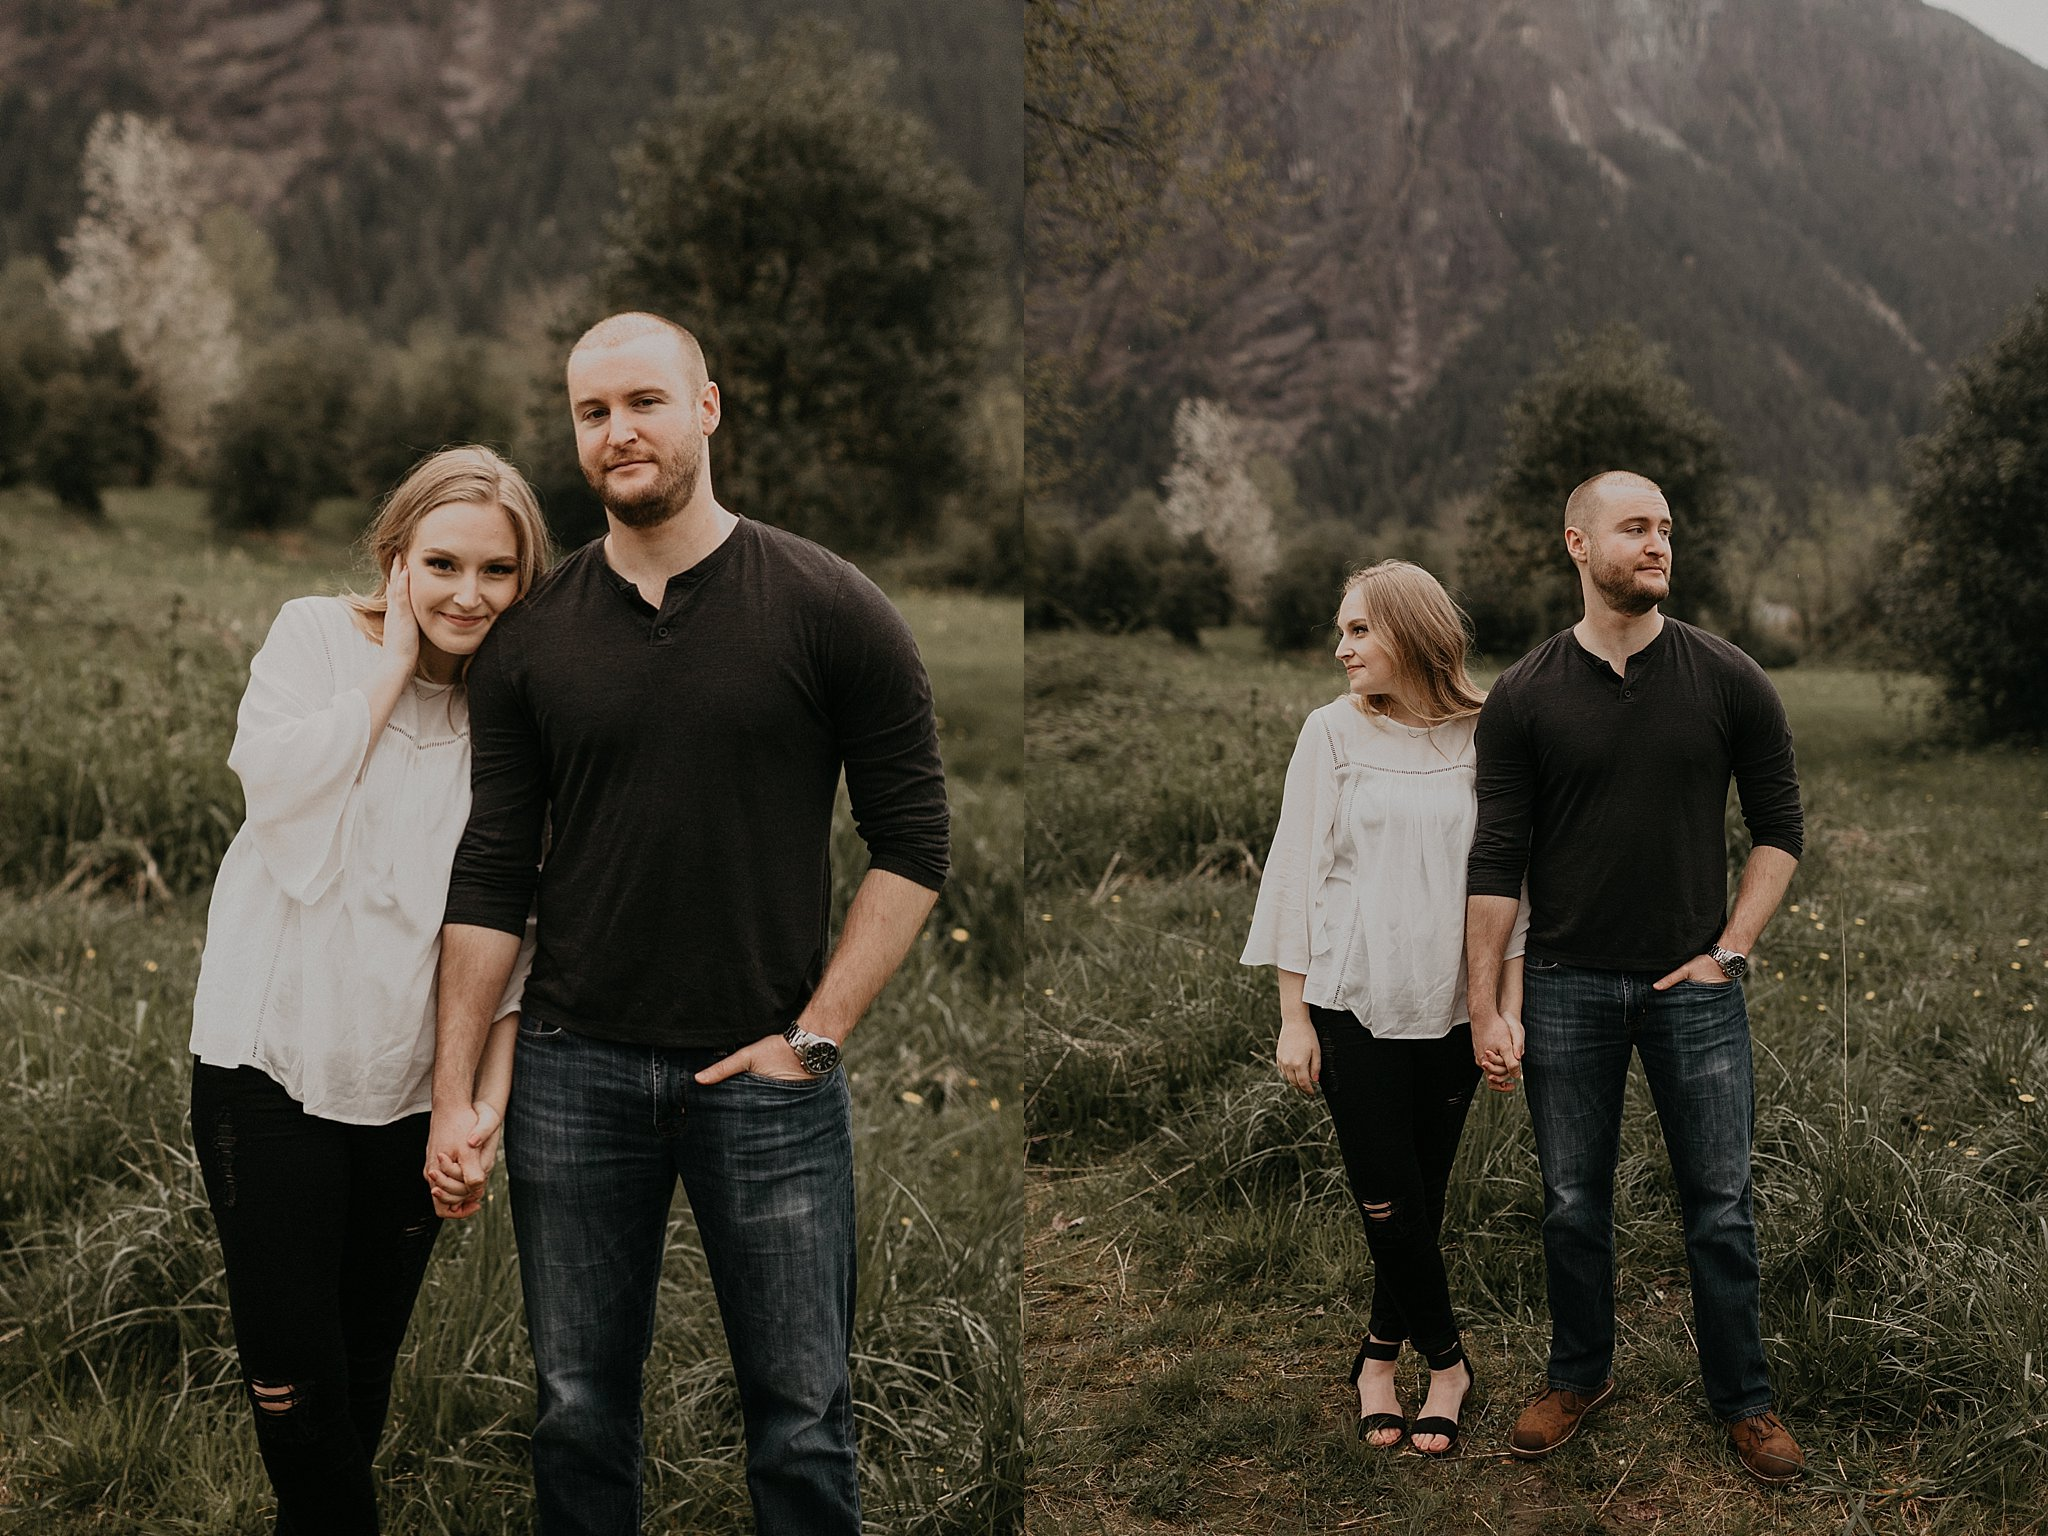 samantha_mcfarlen_bellingham_washington_engagement_photography_seattle_wedding_photographer_0279.jpg